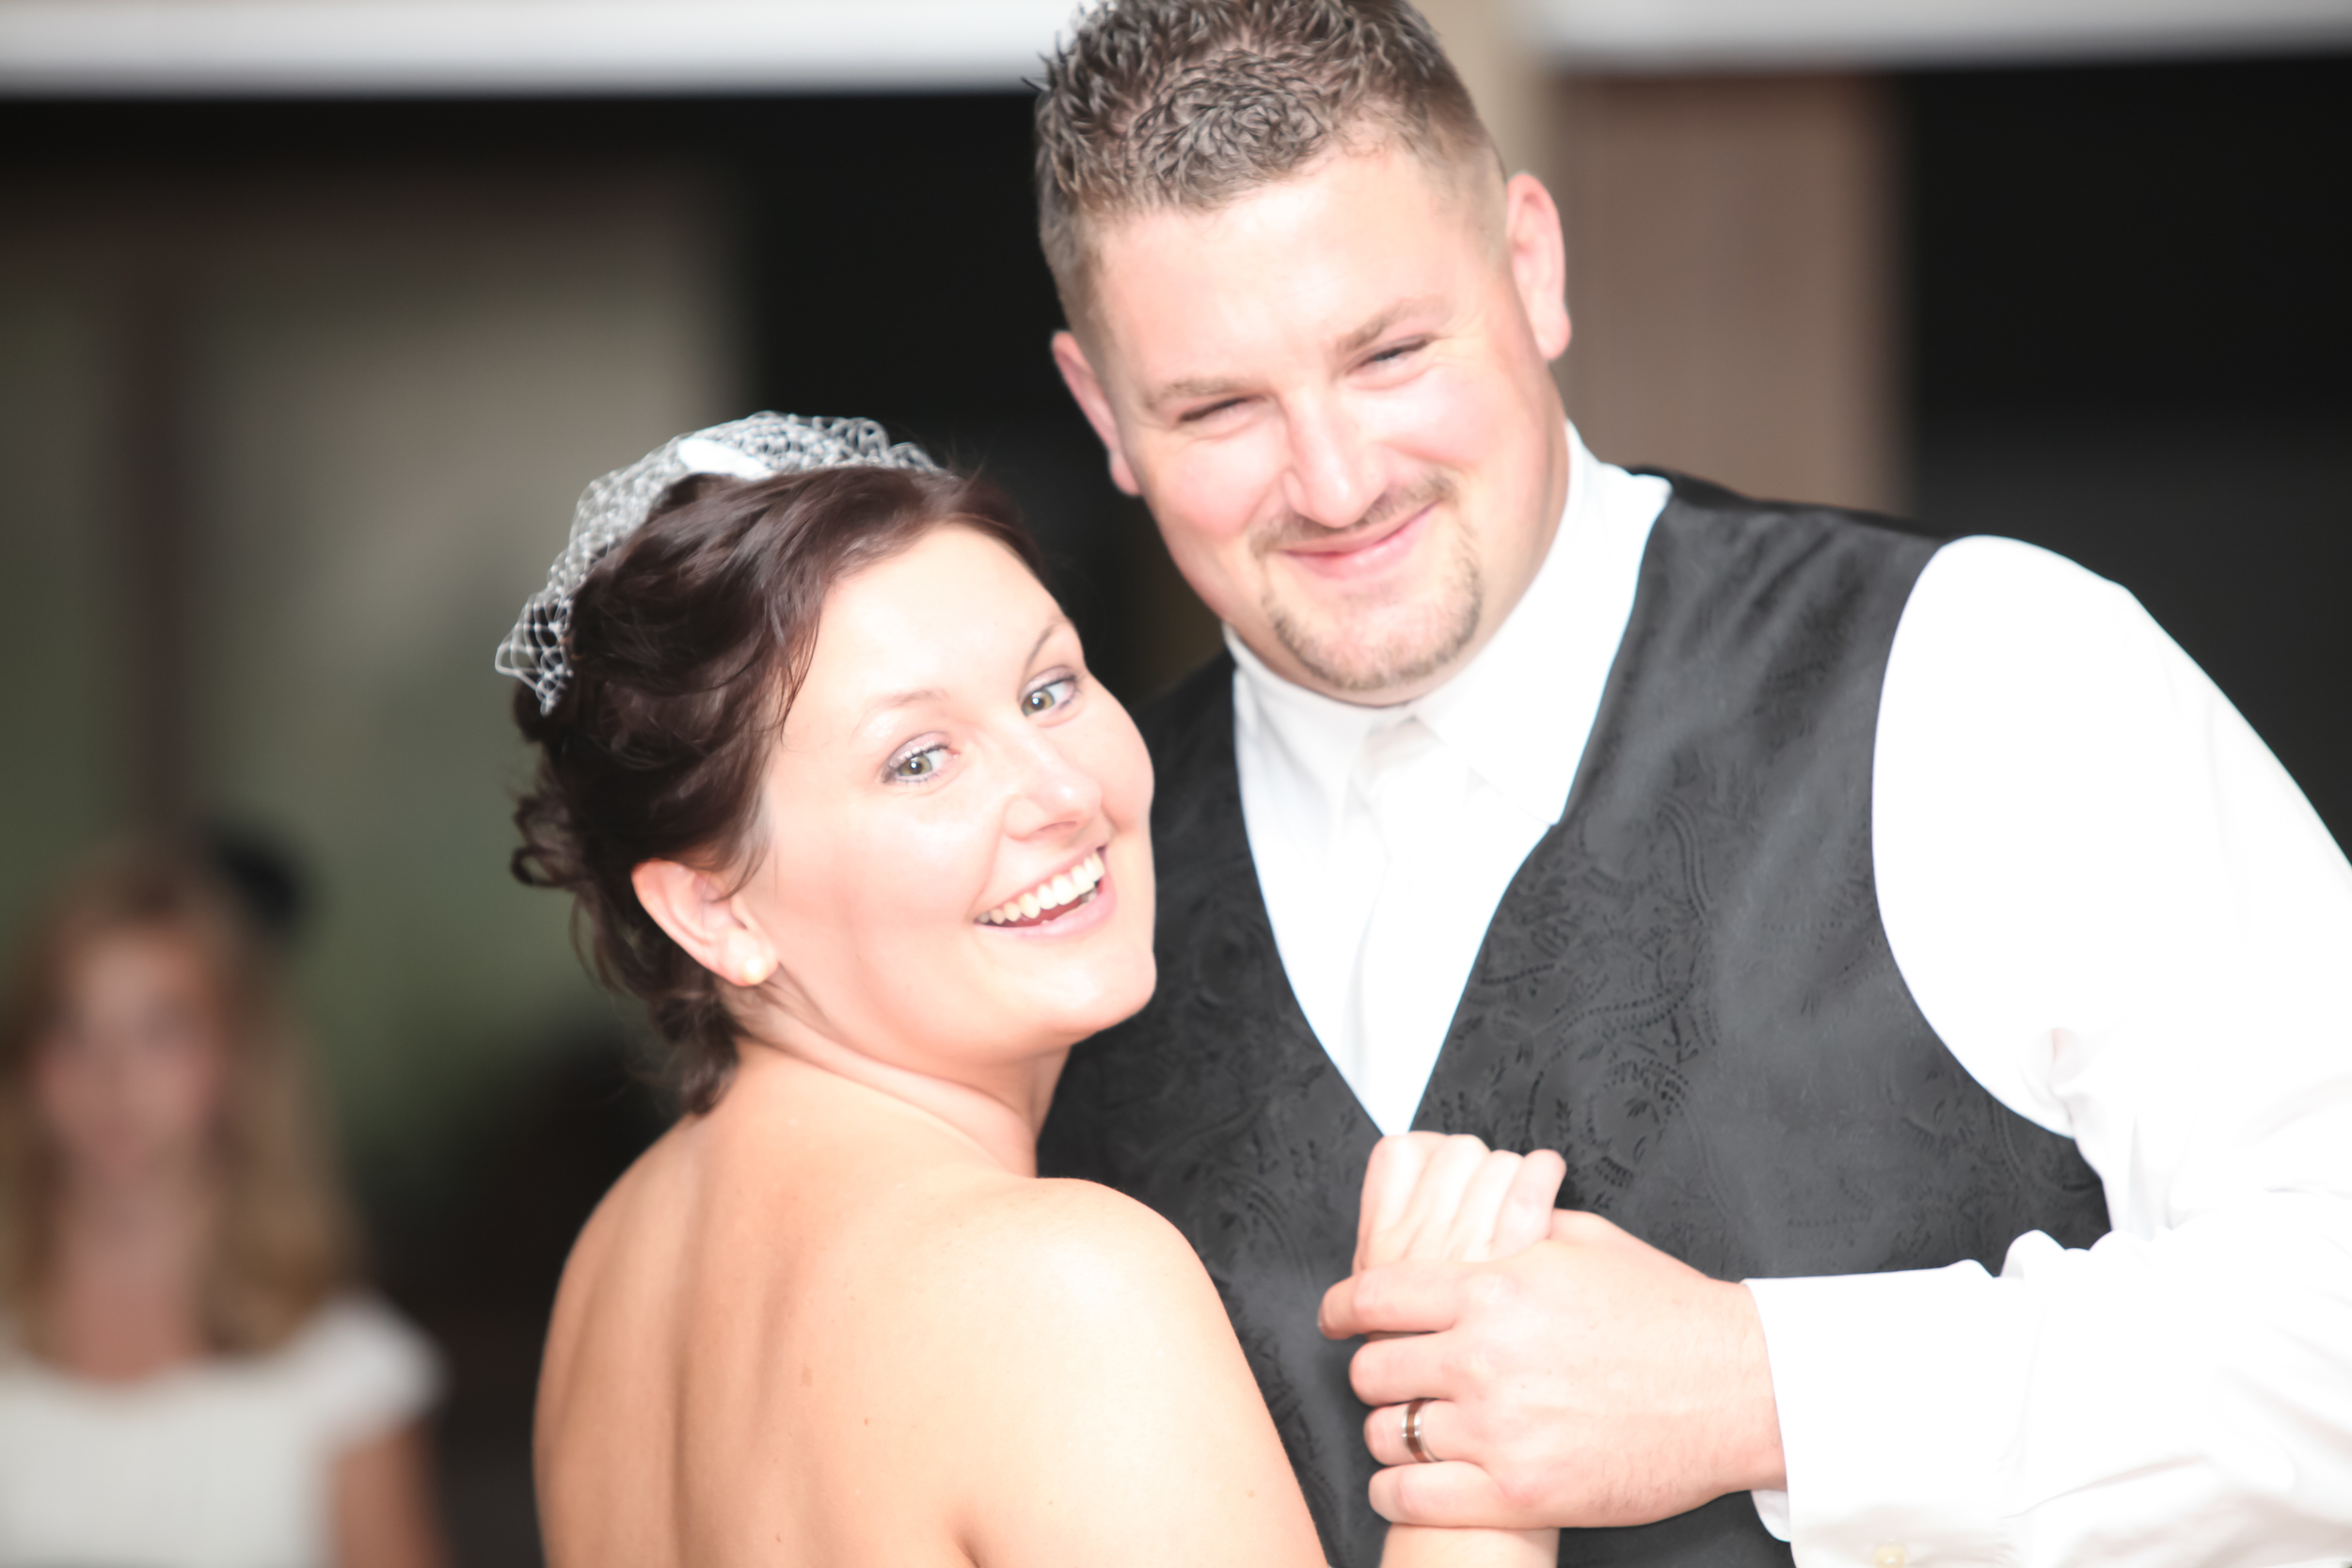 tottingham-allen wedding-1238.jpg